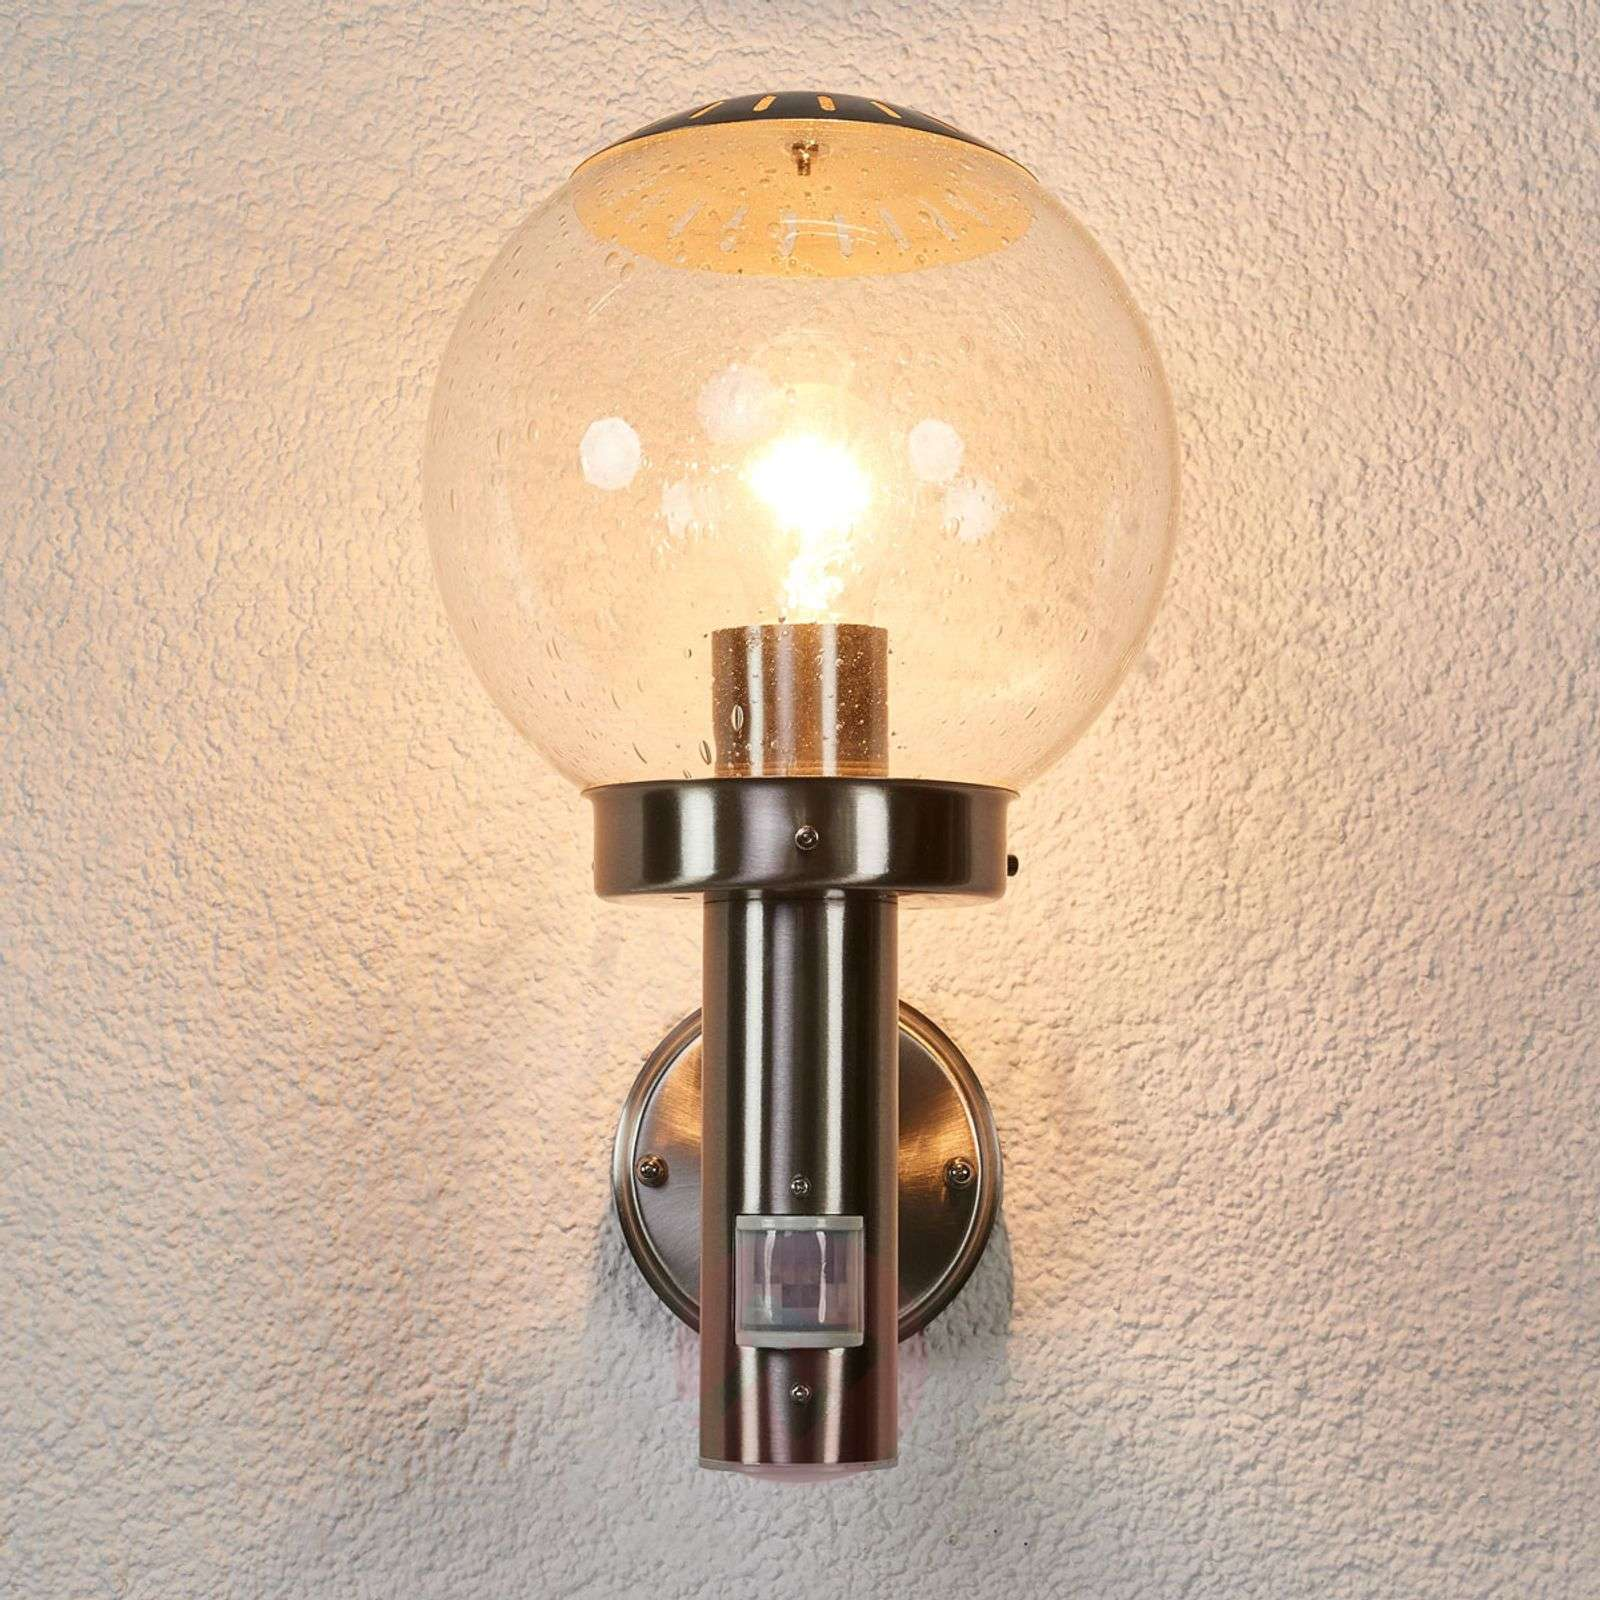 Bowle Exterior Wall Lamp with Motion Detector-4014262-04